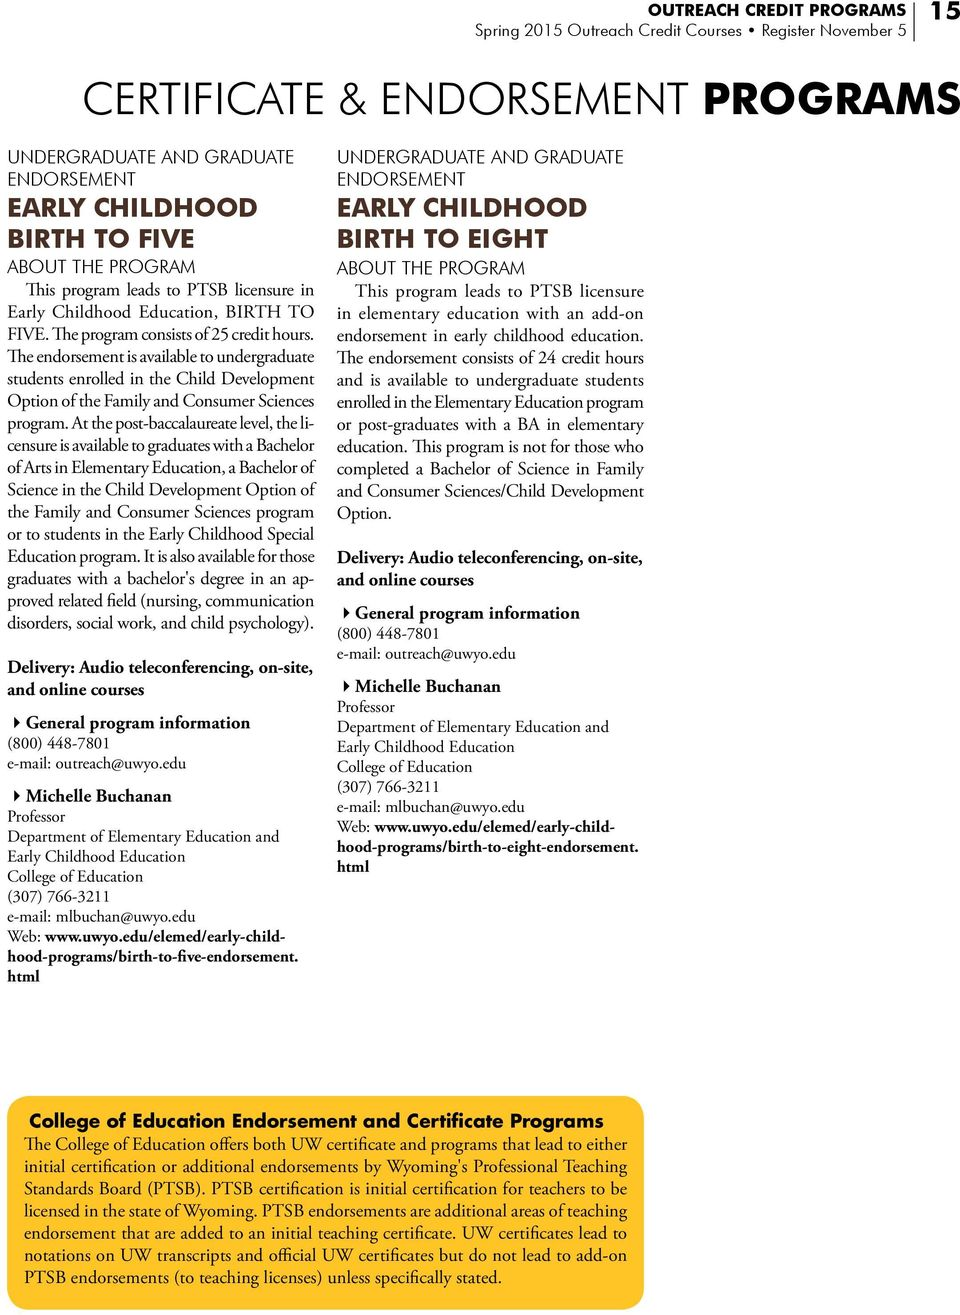 The endorsement is available to undergraduate students enrolled in the Child Development Option of the Family and Consumer Sciences program.